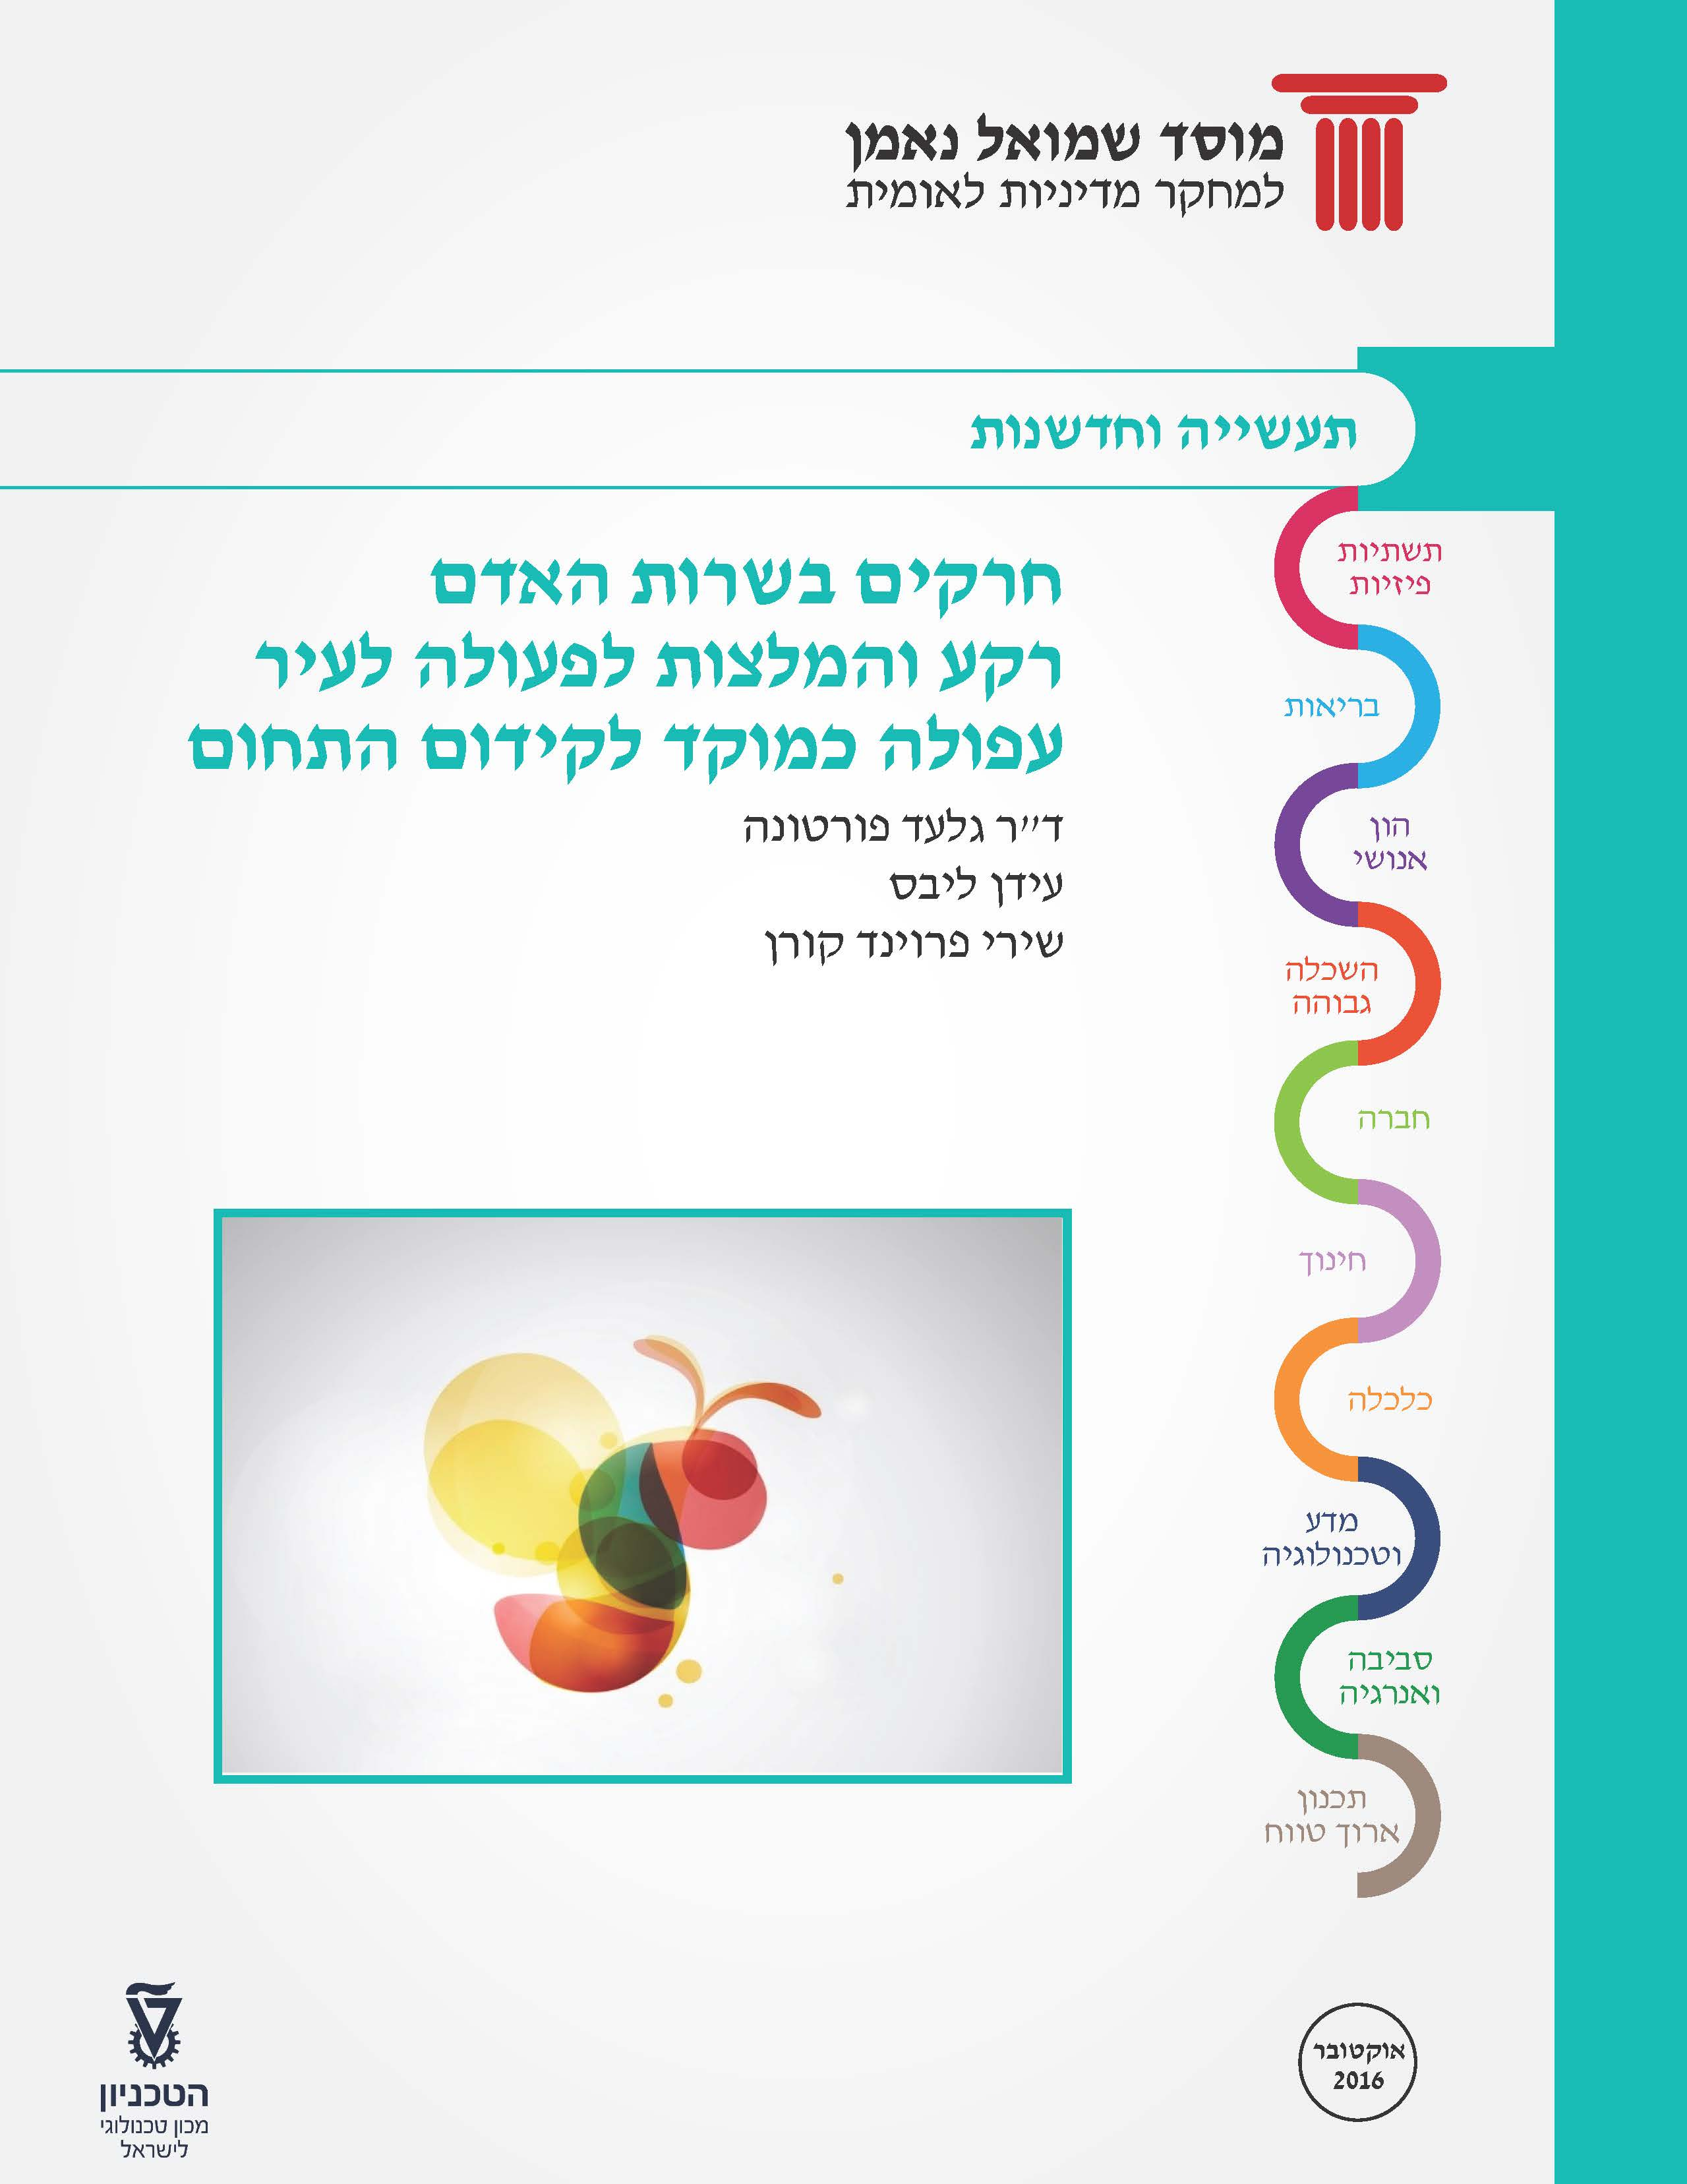 Insects in the Service of Man: Review and Recommendations for the City of Afula as a Hub to Promote the Field